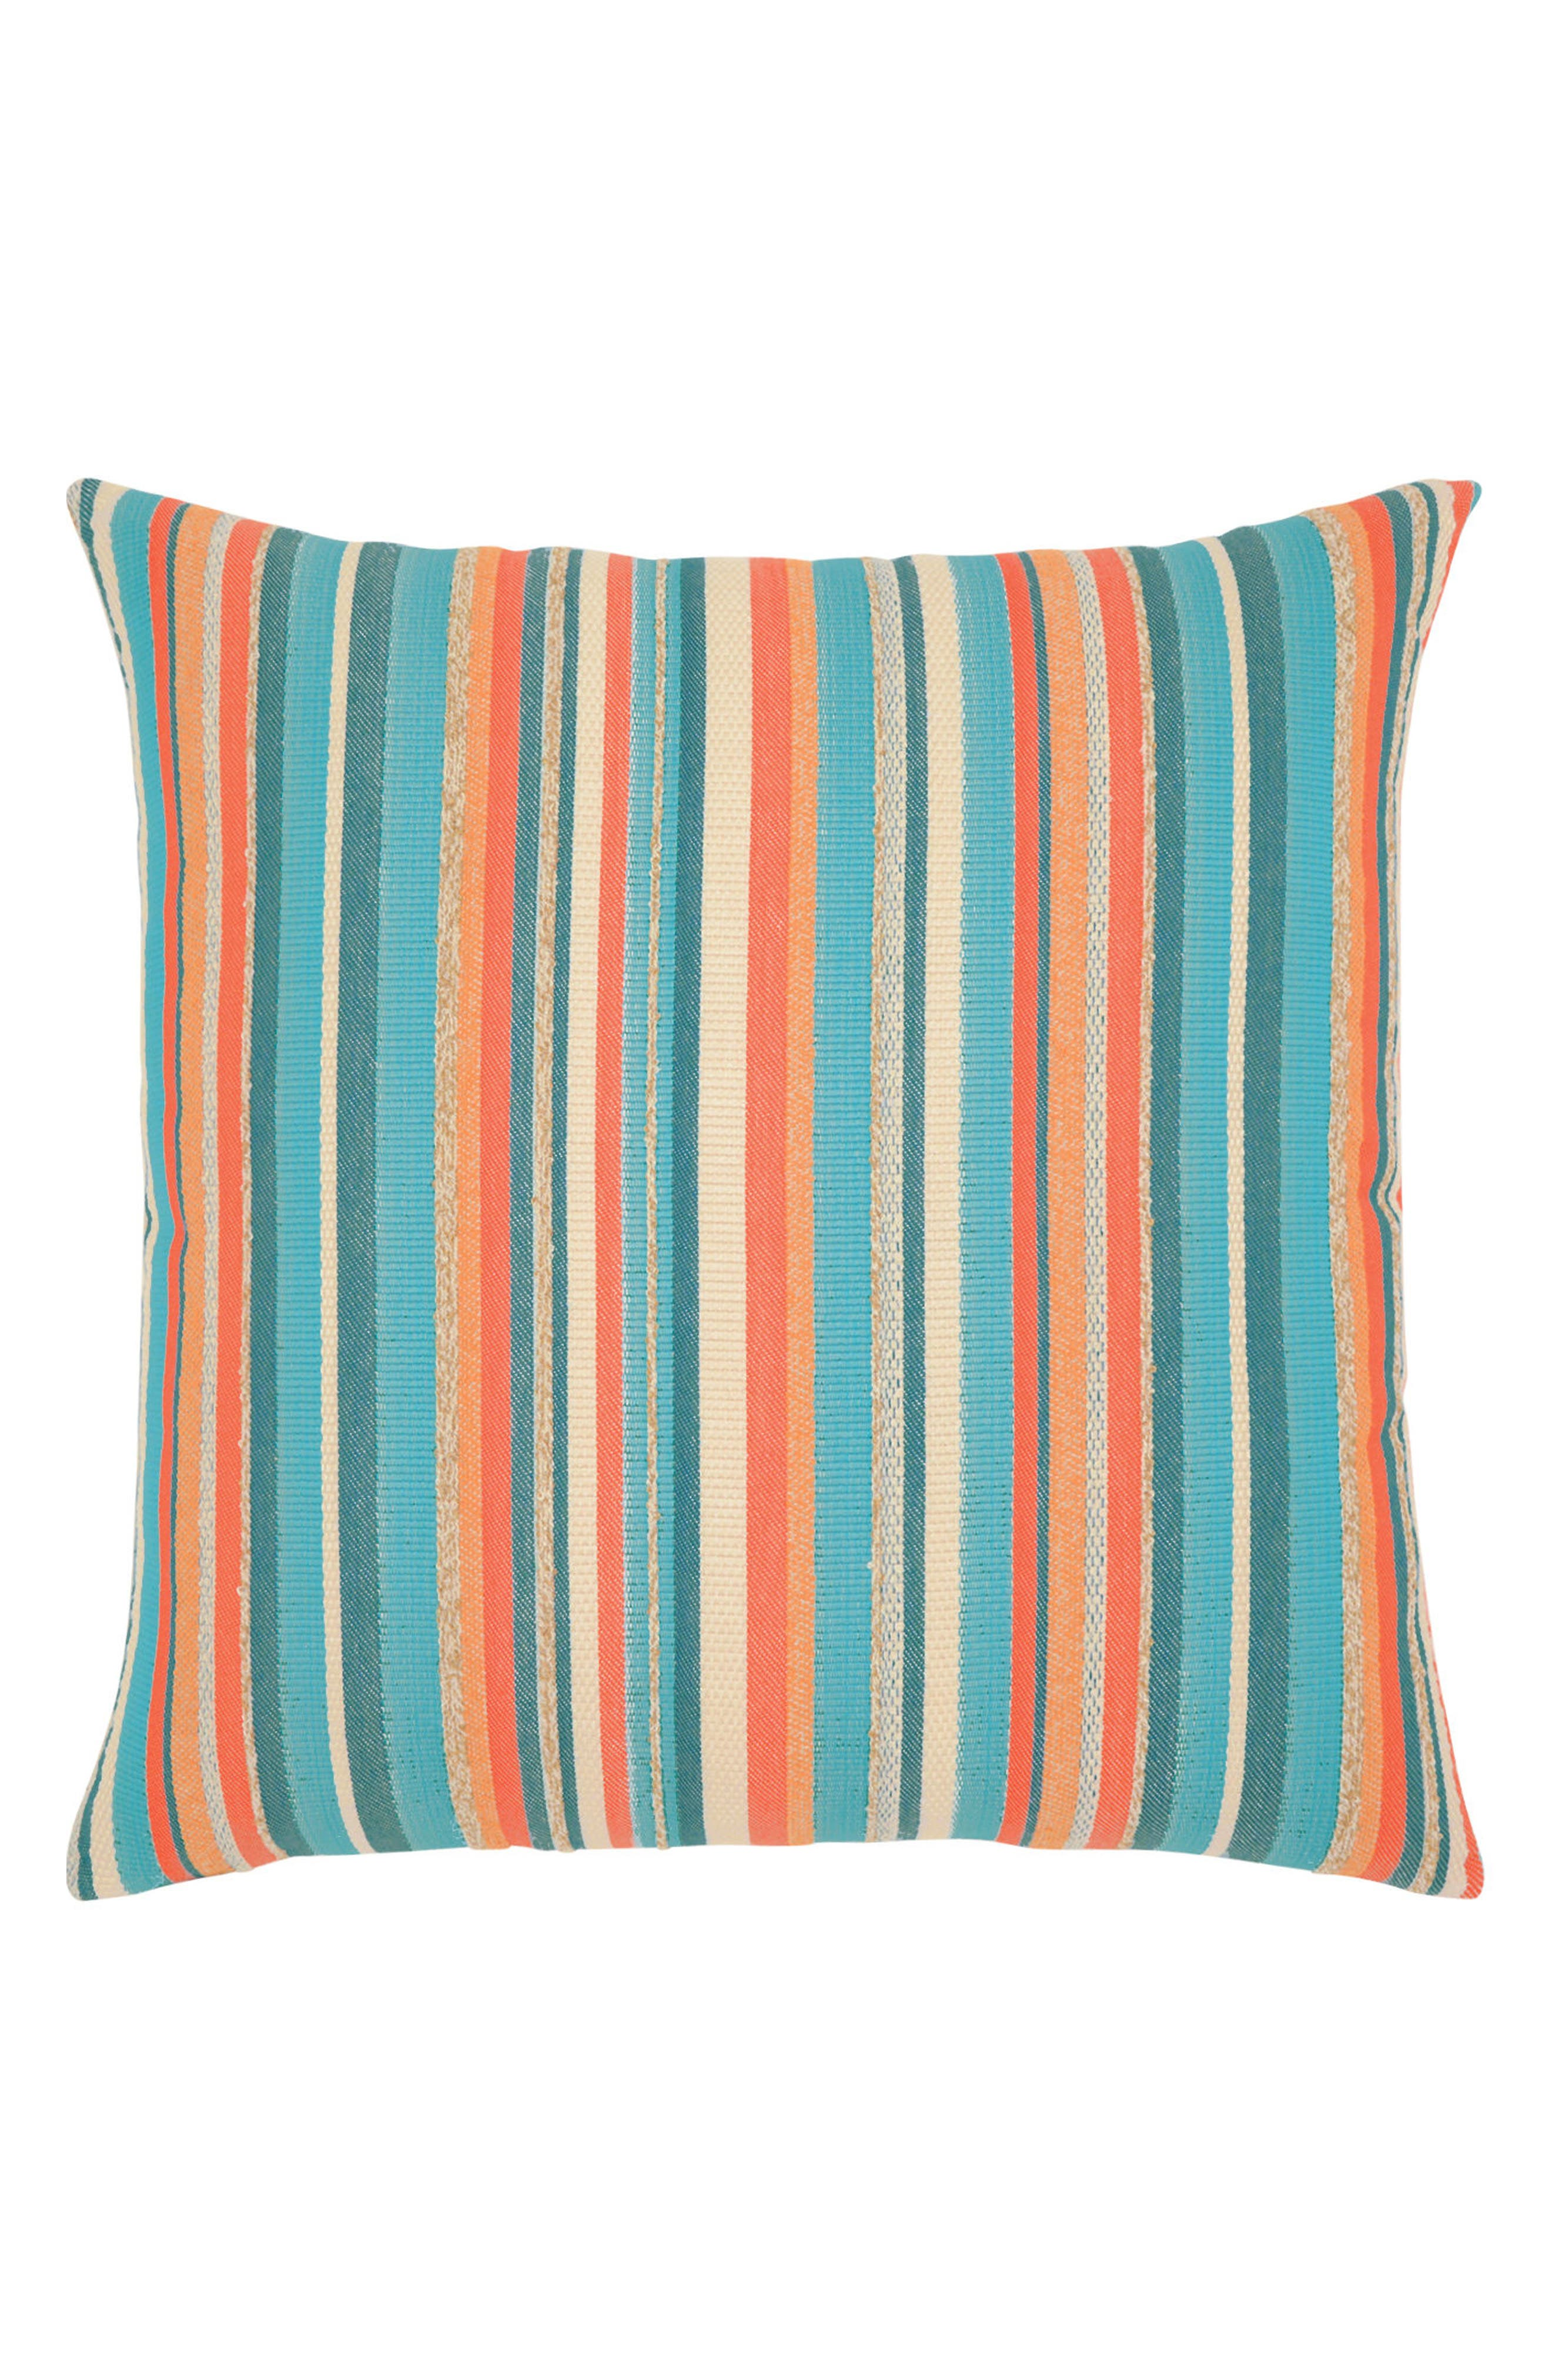 Grand Turk Stripe Indoor/Outdoor Accent Pillow,                             Main thumbnail 1, color,                             BLUE/ ORANGE